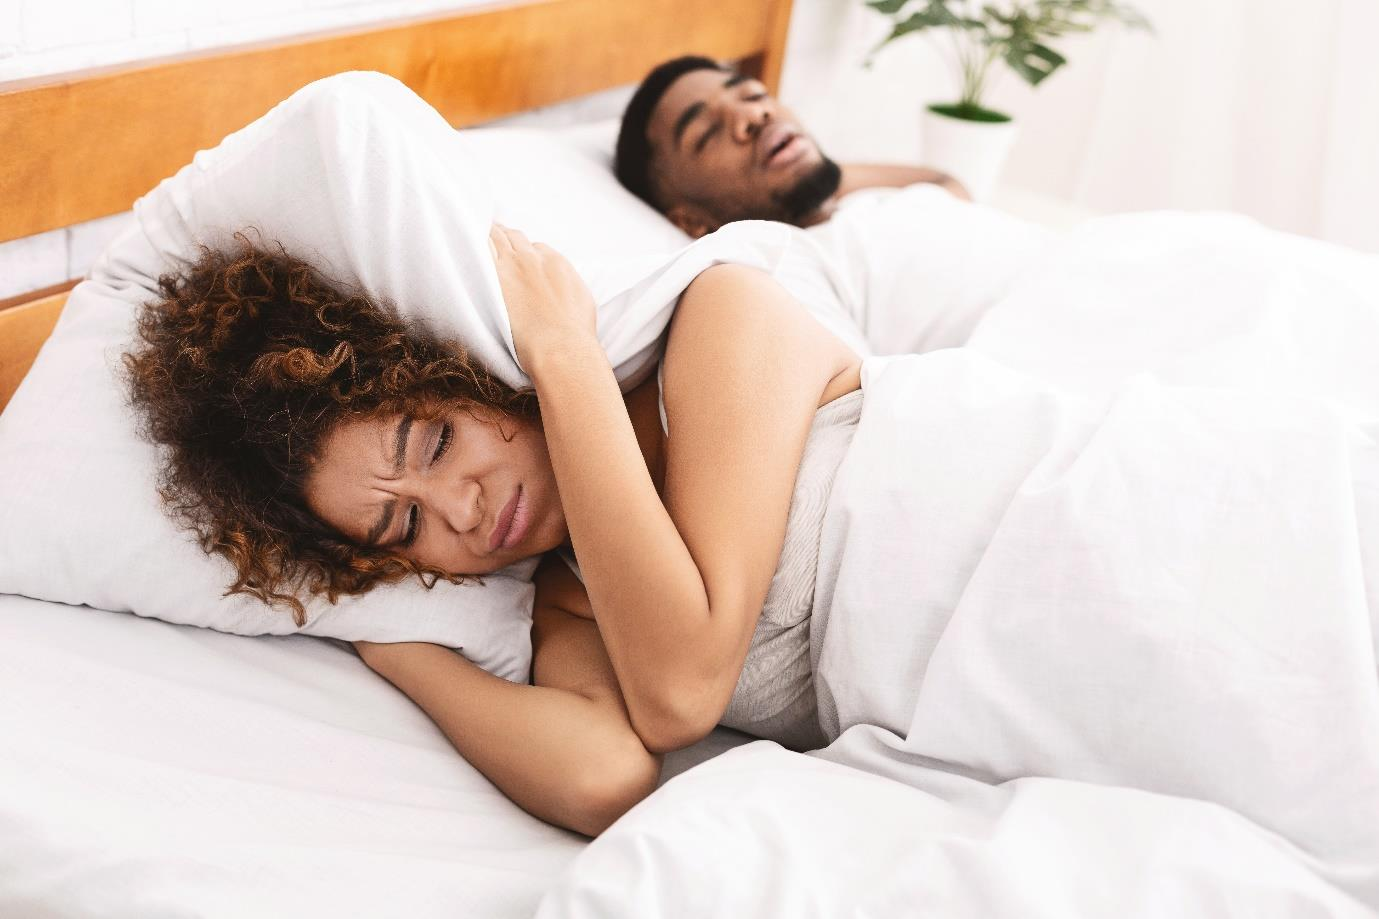 When is a snore not just a snore?